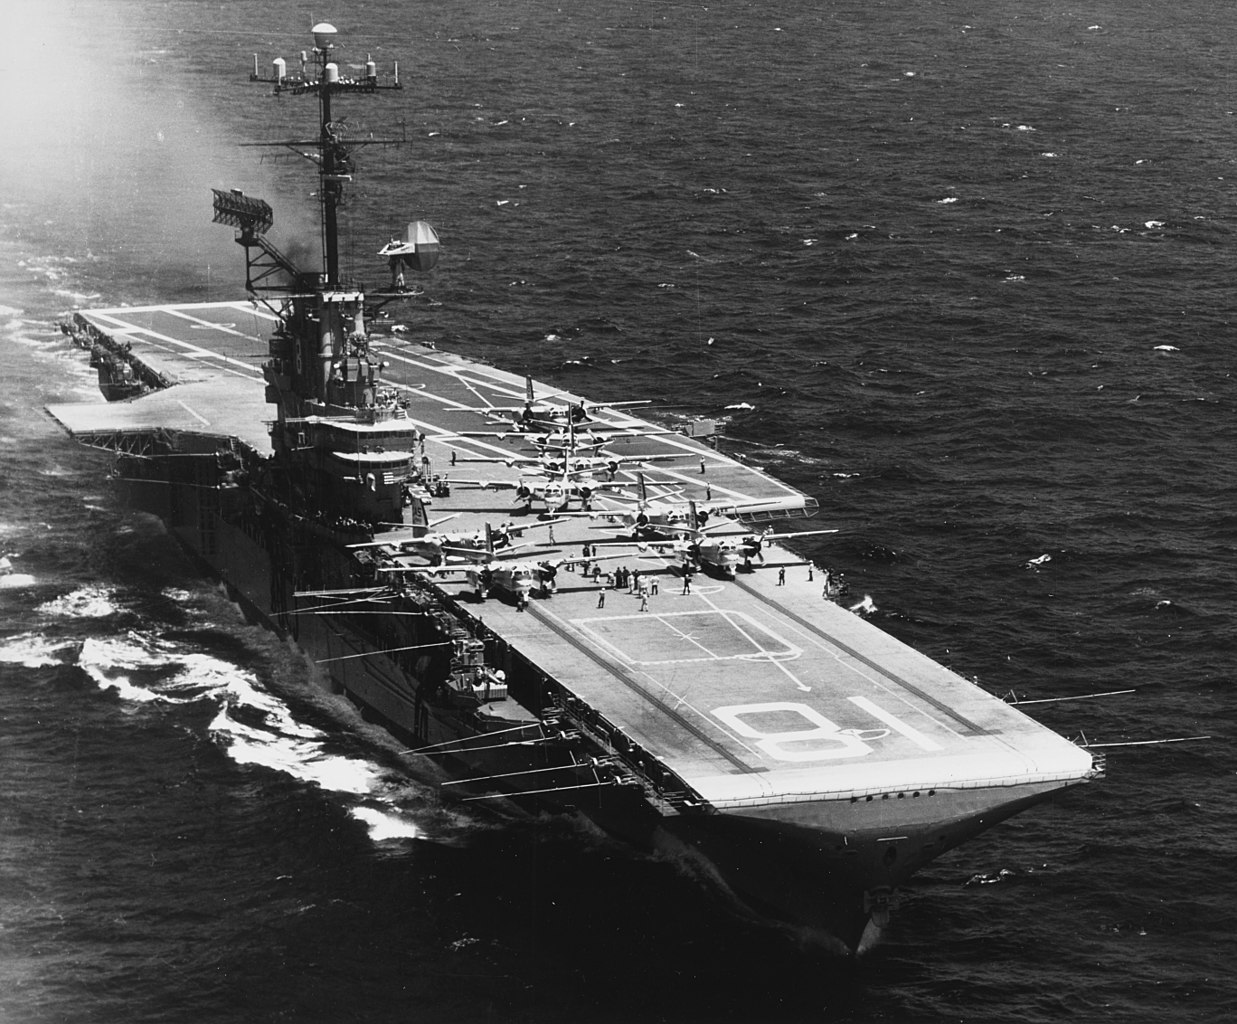 File:USS Wasp (CVS-18) underway at sea, circa in early ...